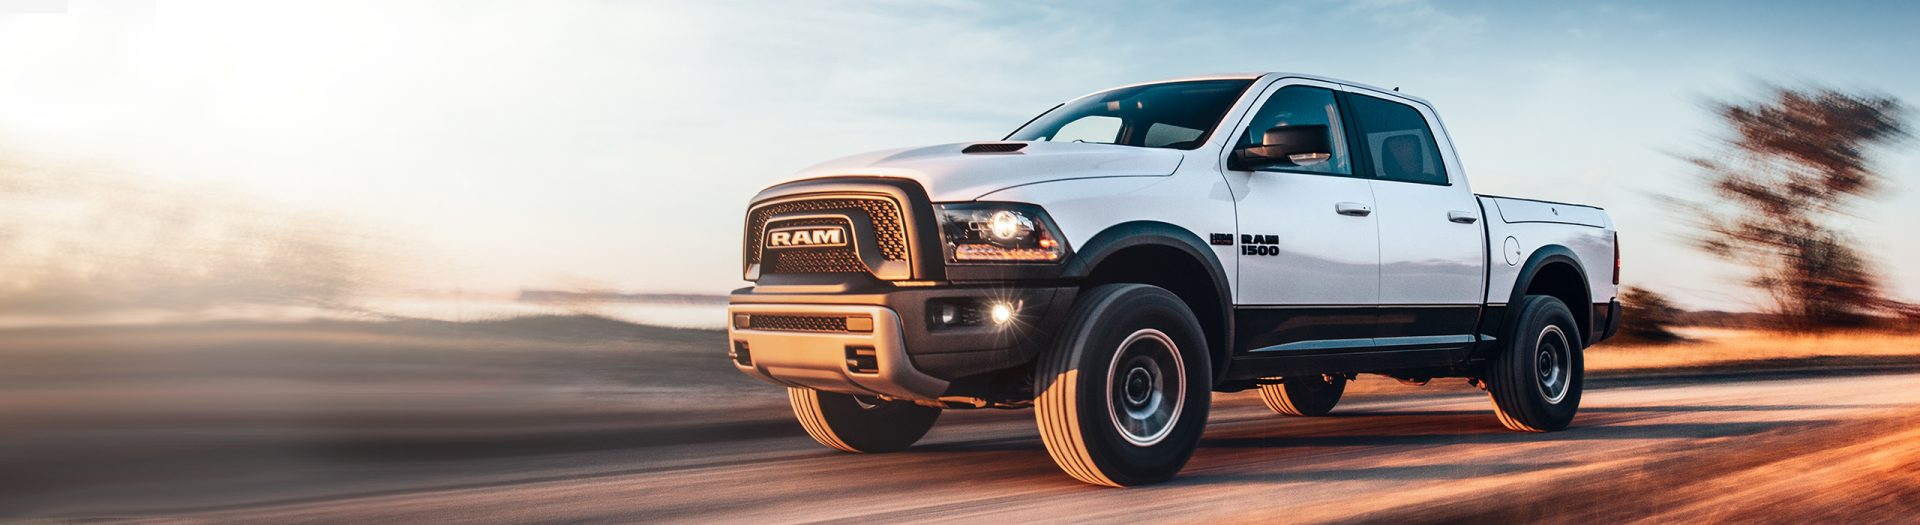 2018 Ram Trucks 1500 Side View Driving